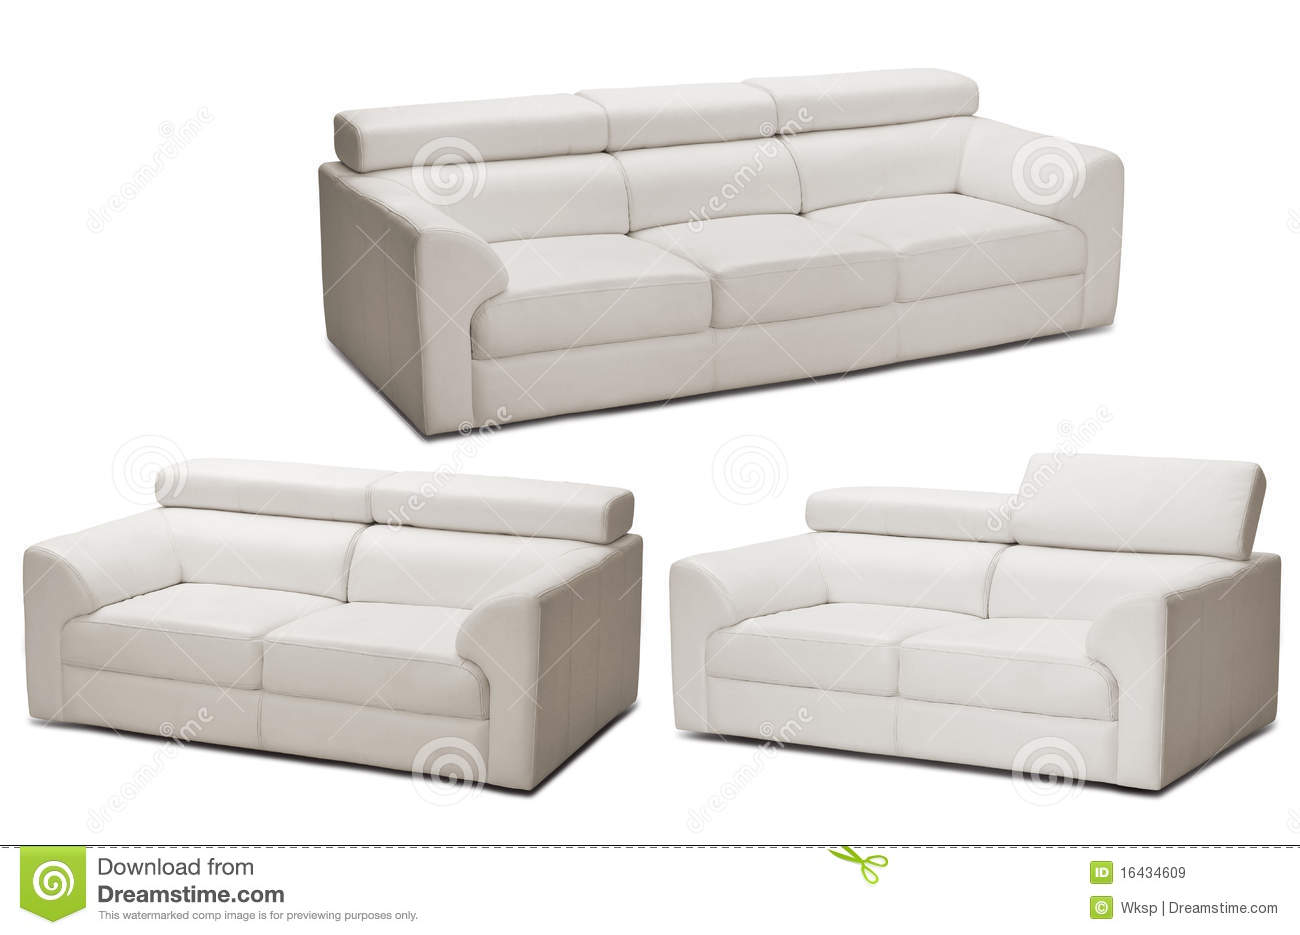 Sofas Stock Image Image Of Leather Settee Hall Simplicity 16434609